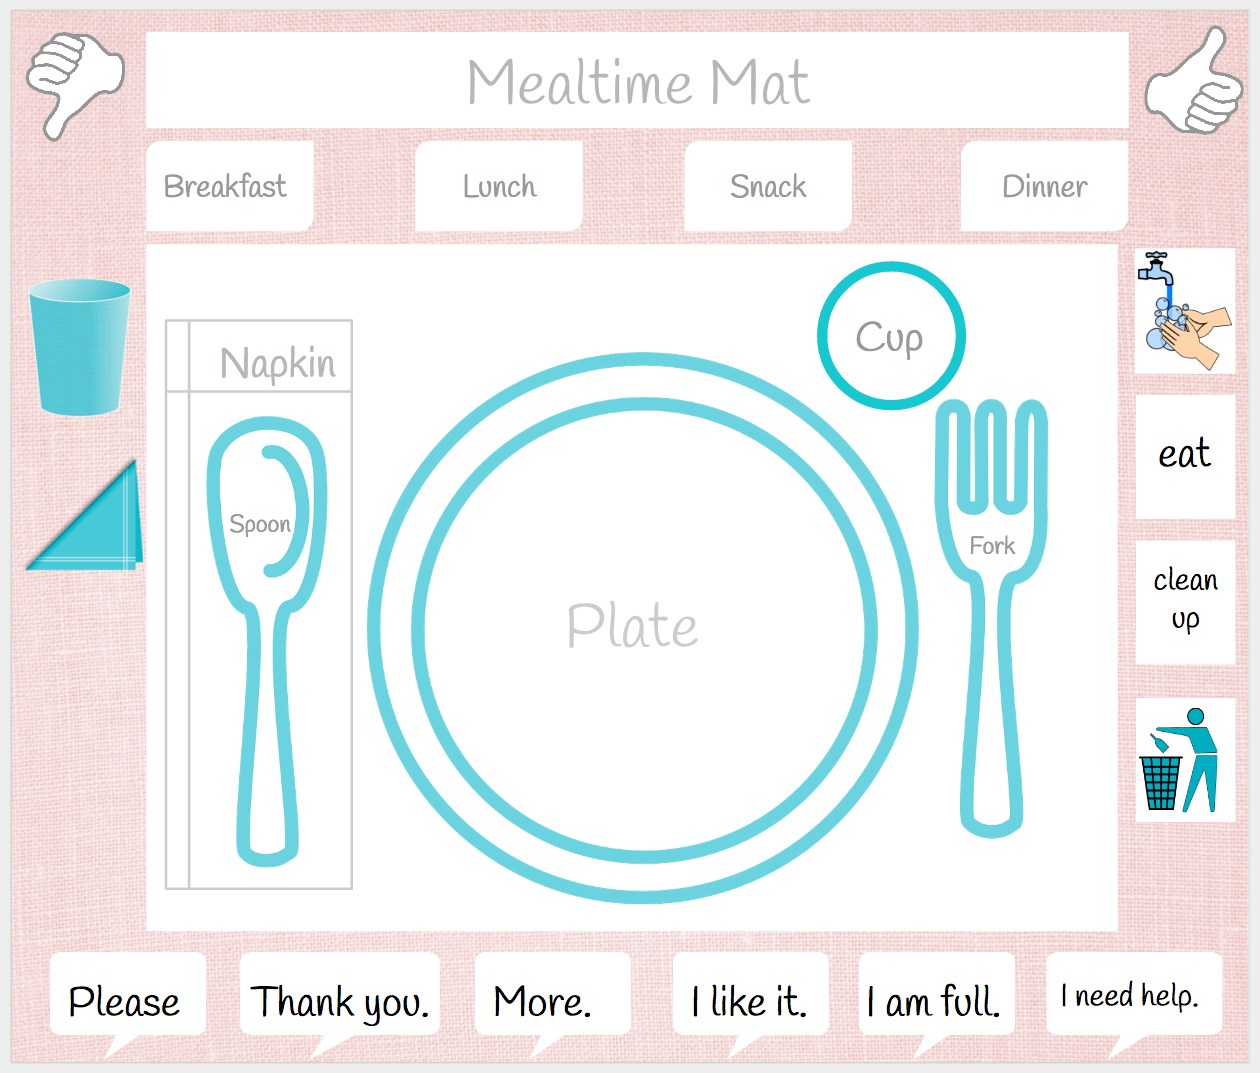 photo regarding Printable Placemat titled Mealtime Printable Placemat